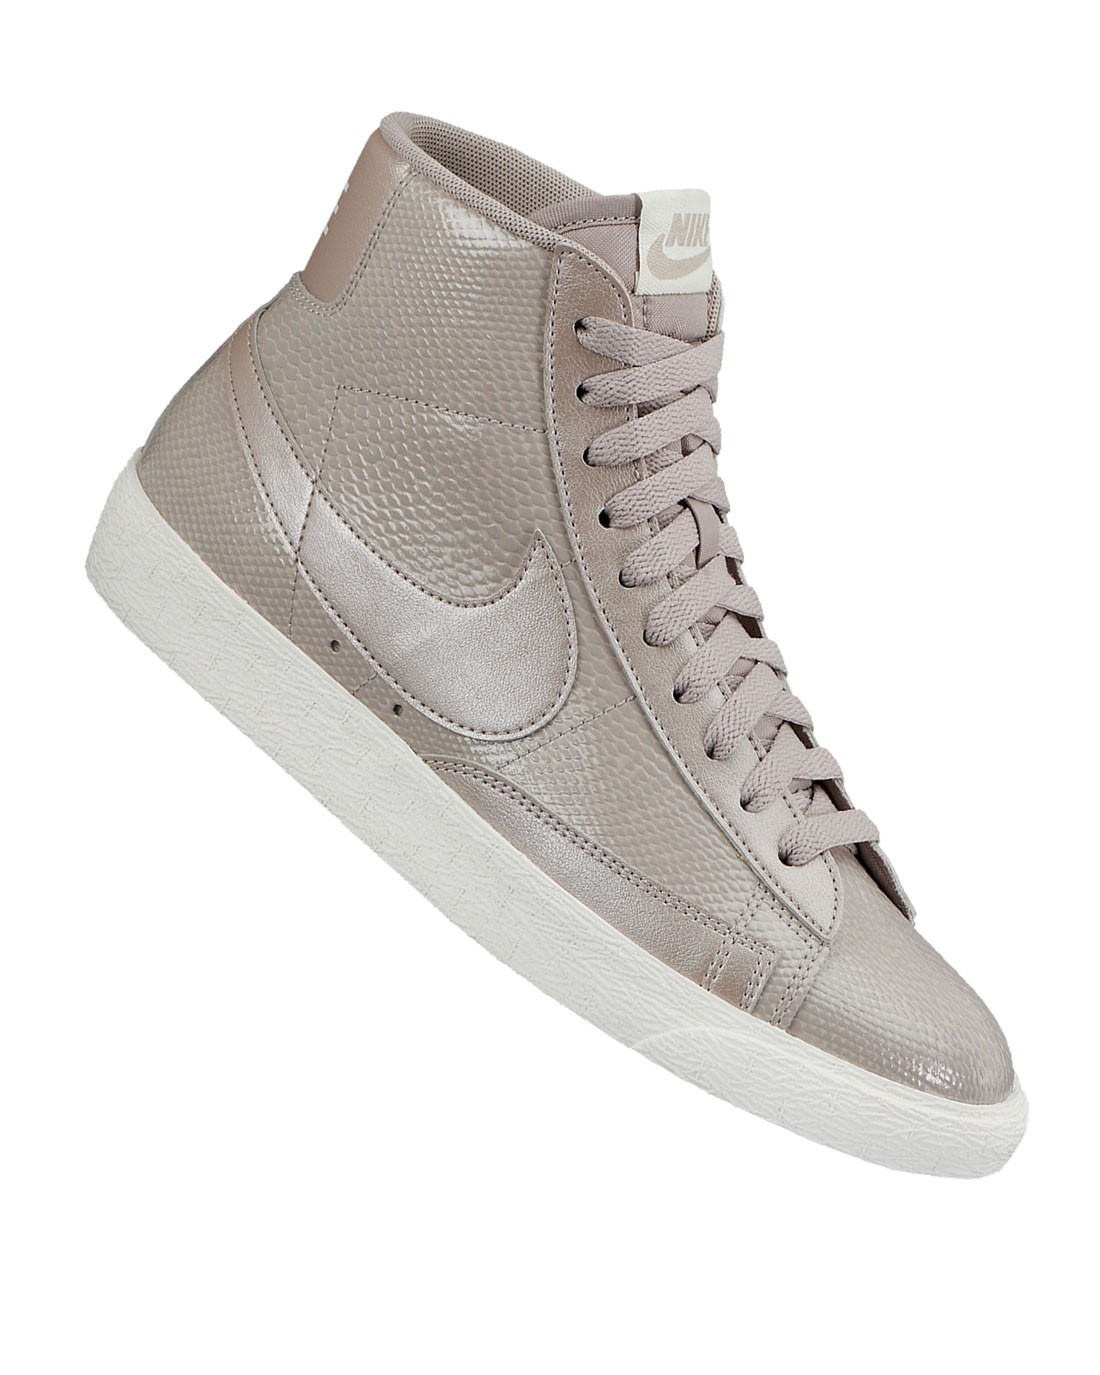 competitive price e14fa 3799d Nike Blazer Mid Leather Premium (Ltr Prm) 685225-100 Orewood Brown White  Men s